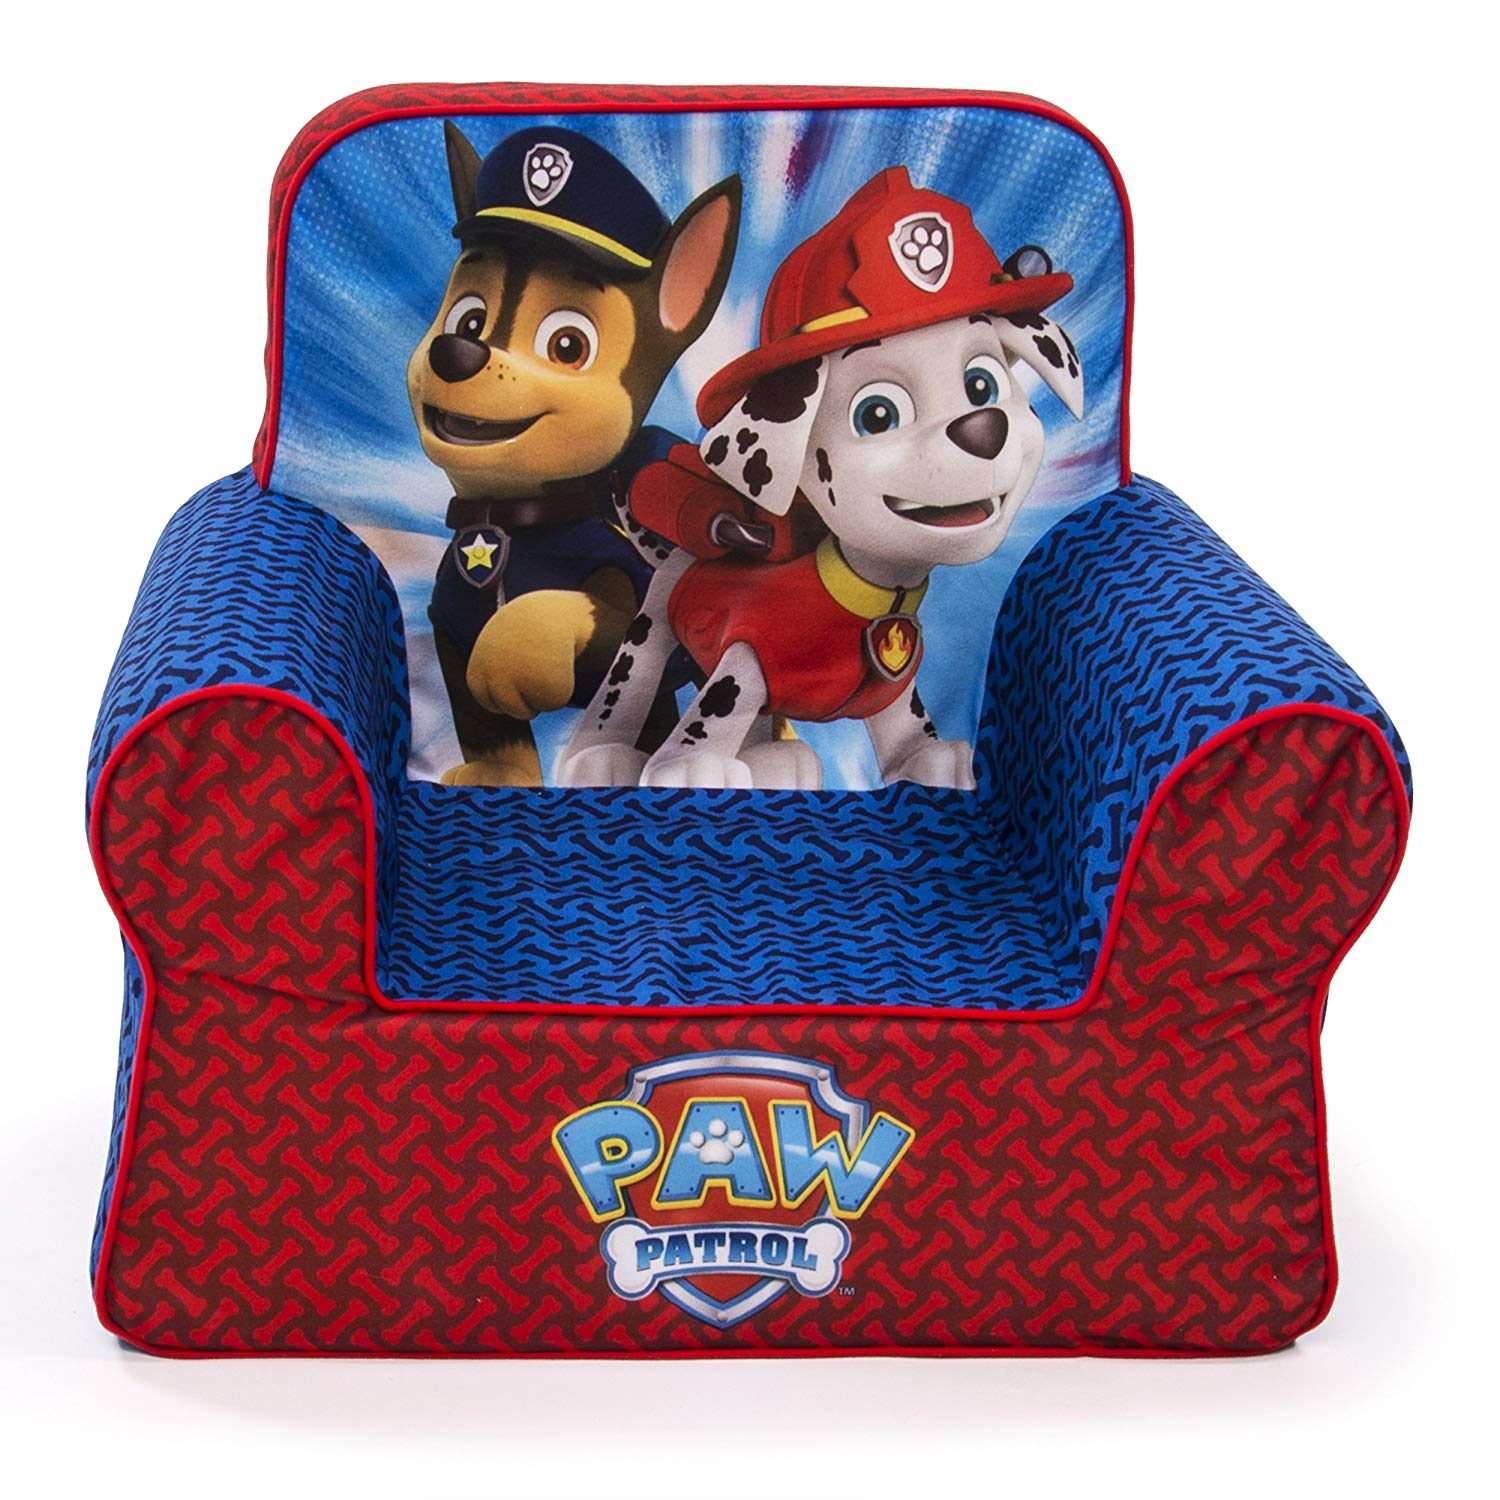 Paw Patrol Christmas Gifts for Kids